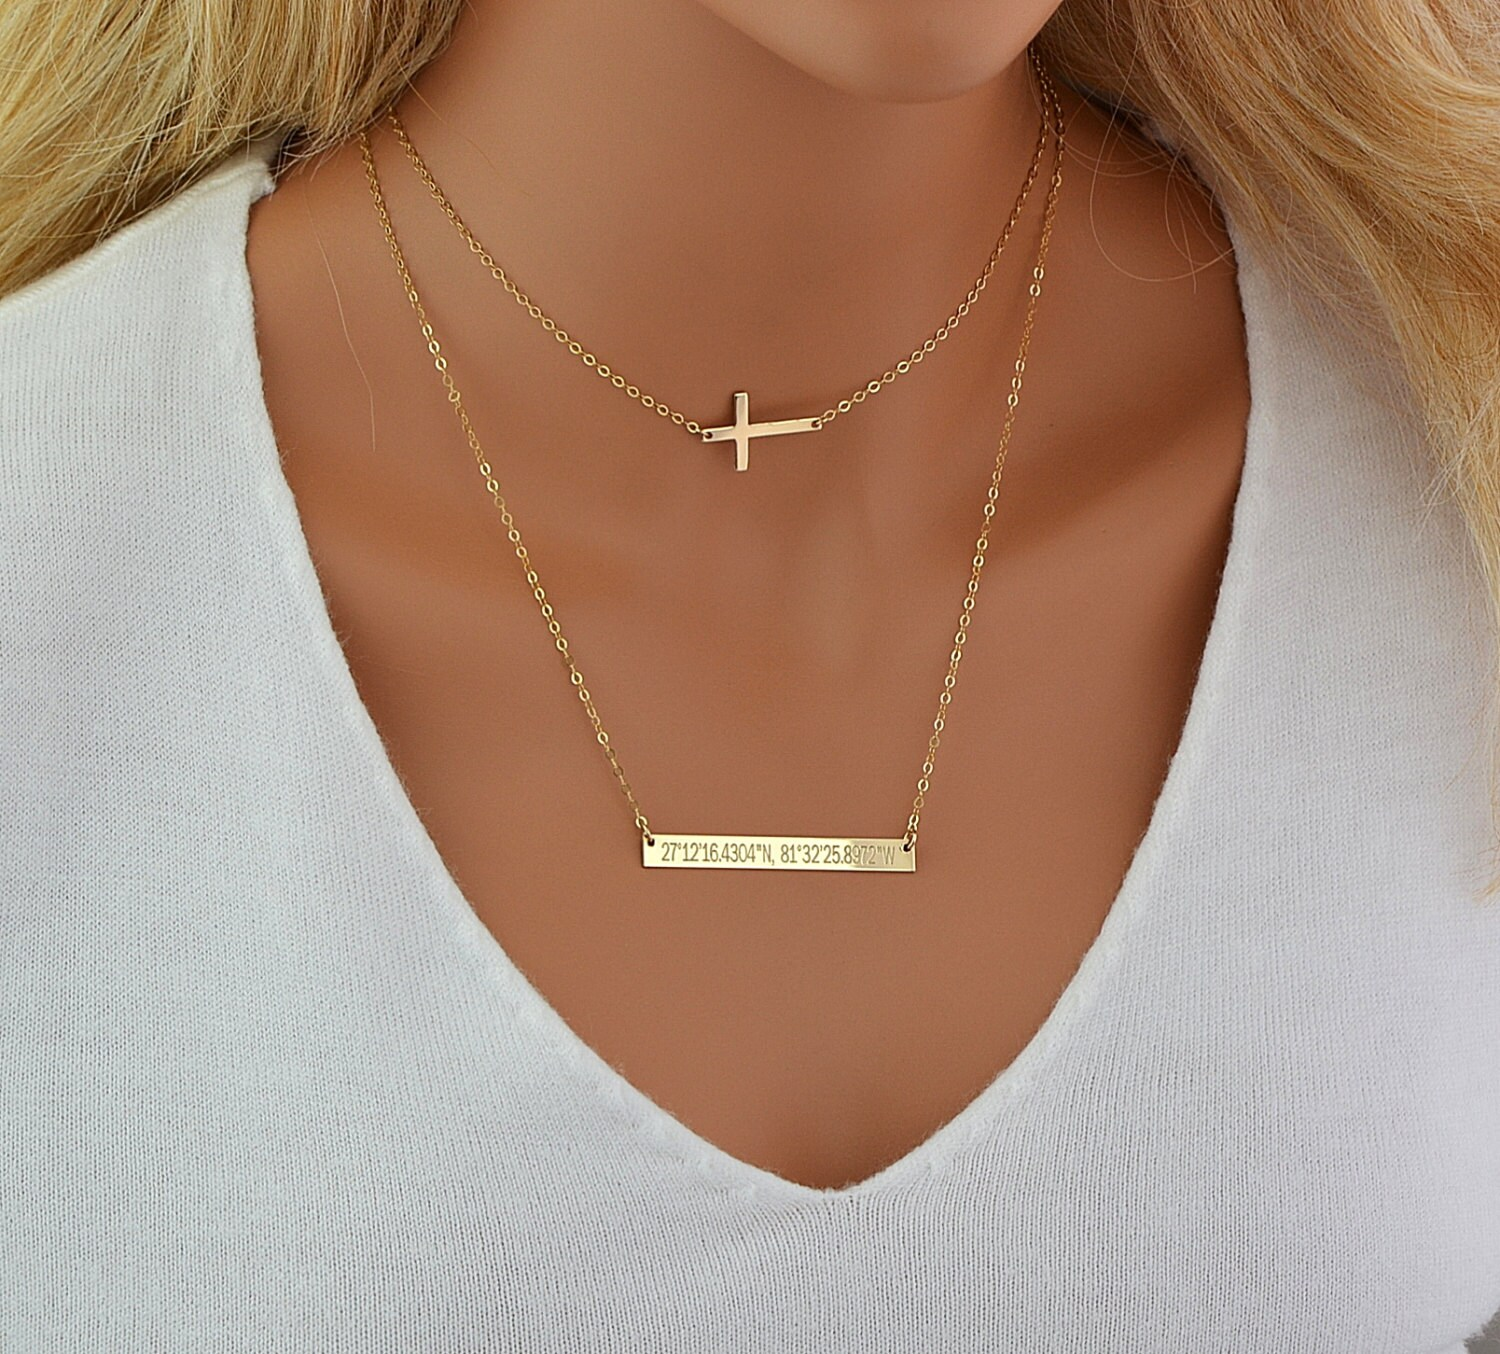 choker necklace set layering necklace gold cross necklace. Black Bedroom Furniture Sets. Home Design Ideas